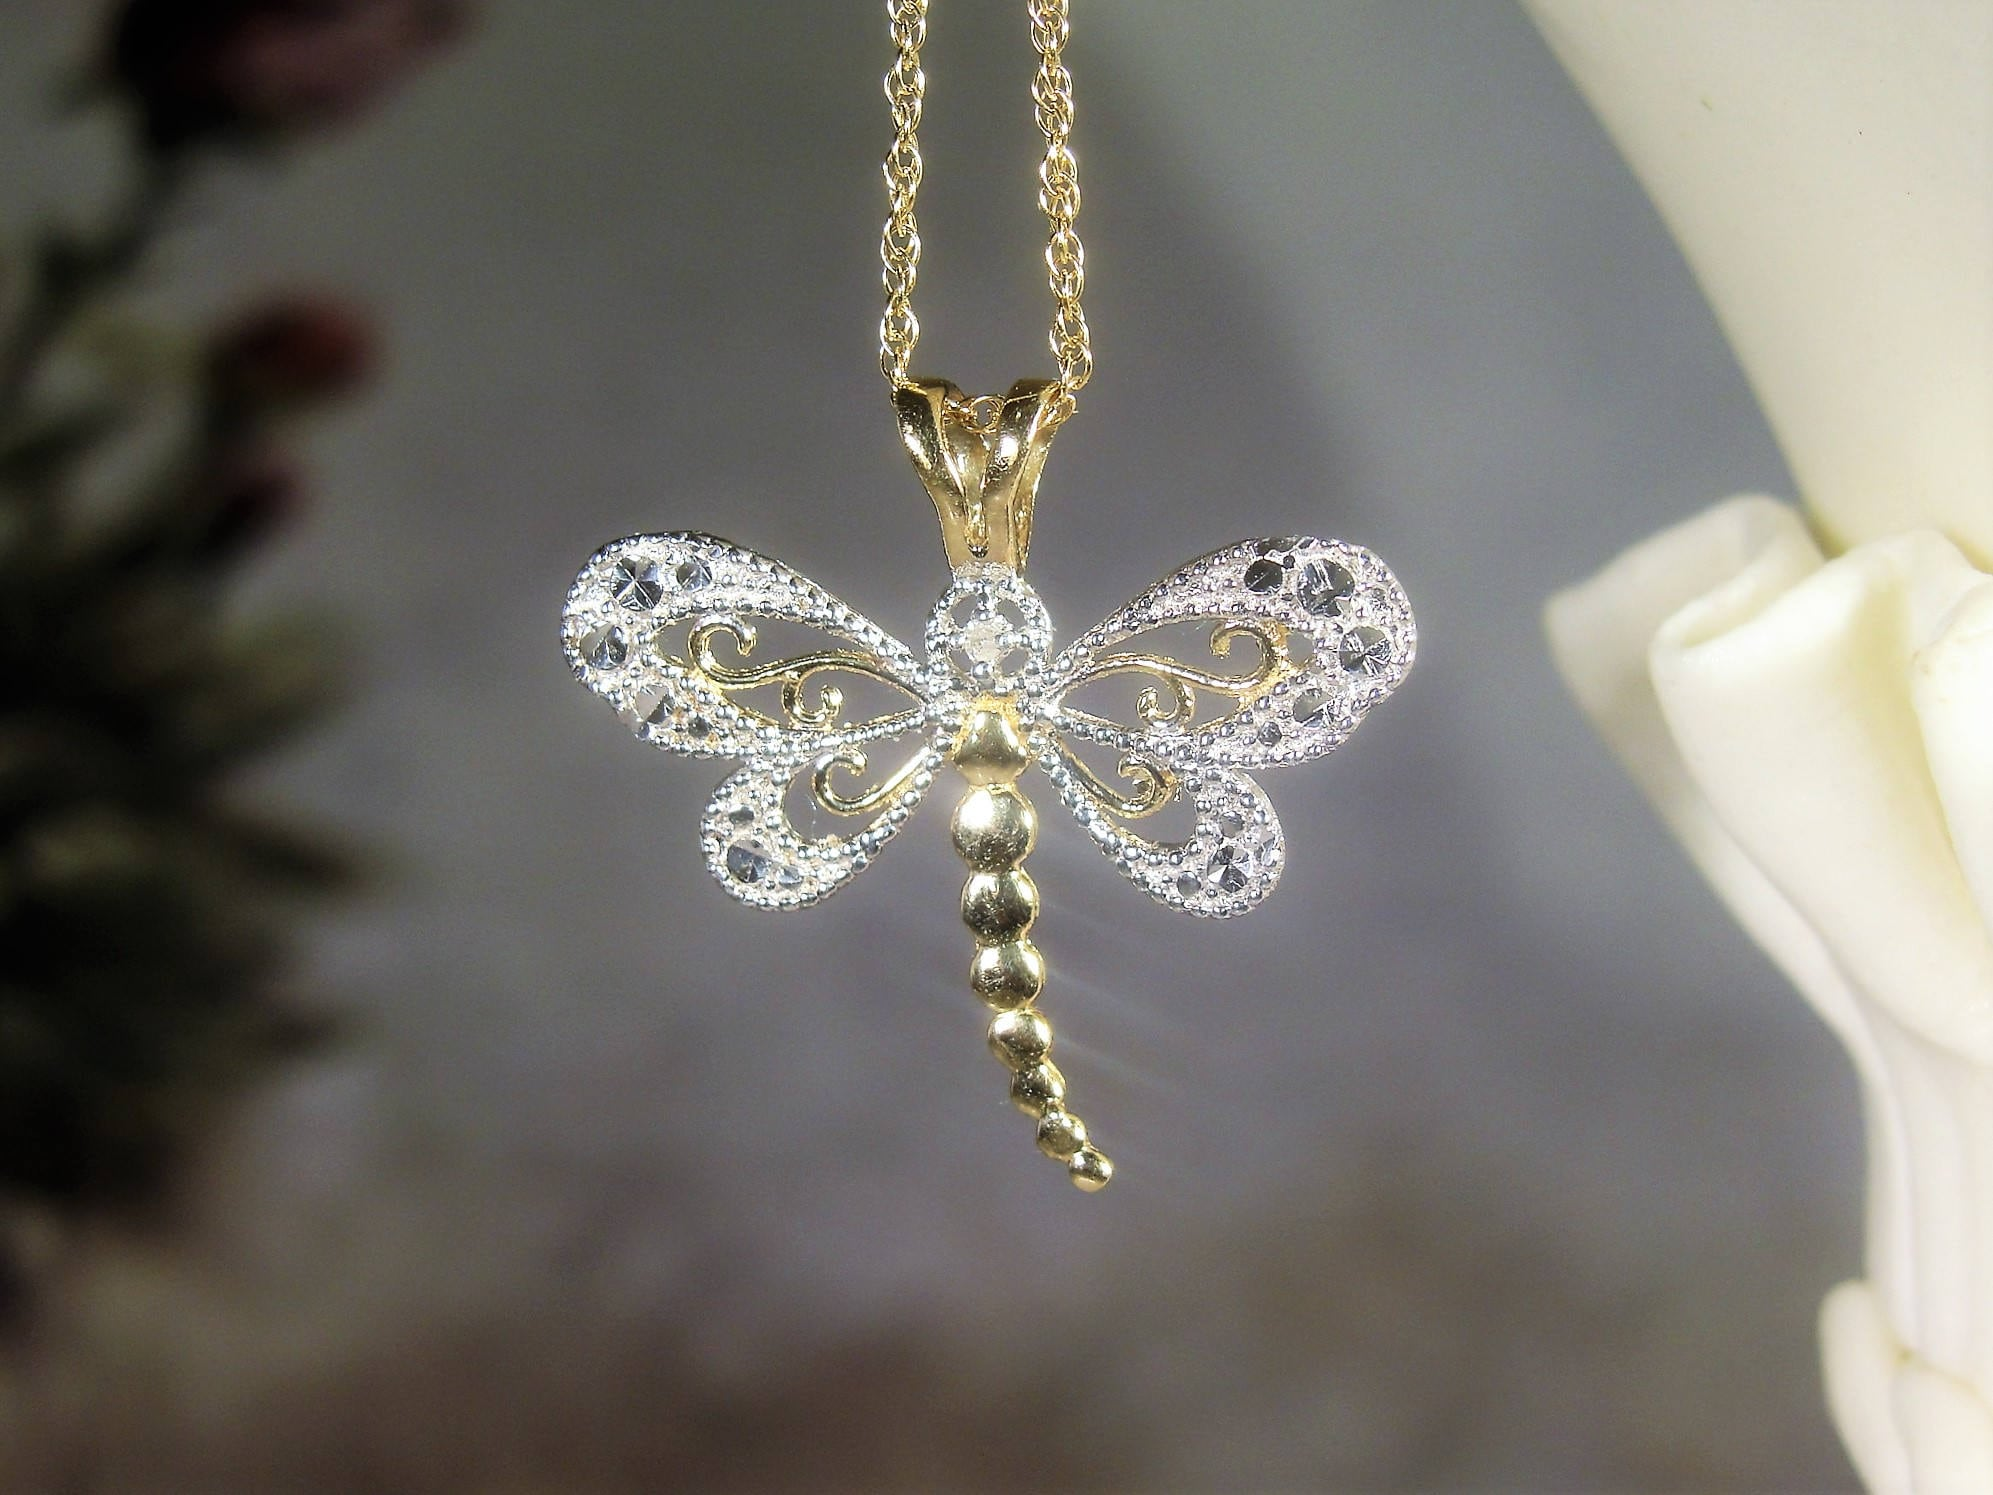 Dragonfly necklace 14k yellow gold 16 inch chain 10k white and dragonfly necklace 14k yellow gold 16 inch chain 10k white and yellow gold pendant genuine diamond filigree dragonfly vintage necklace aloadofball Gallery